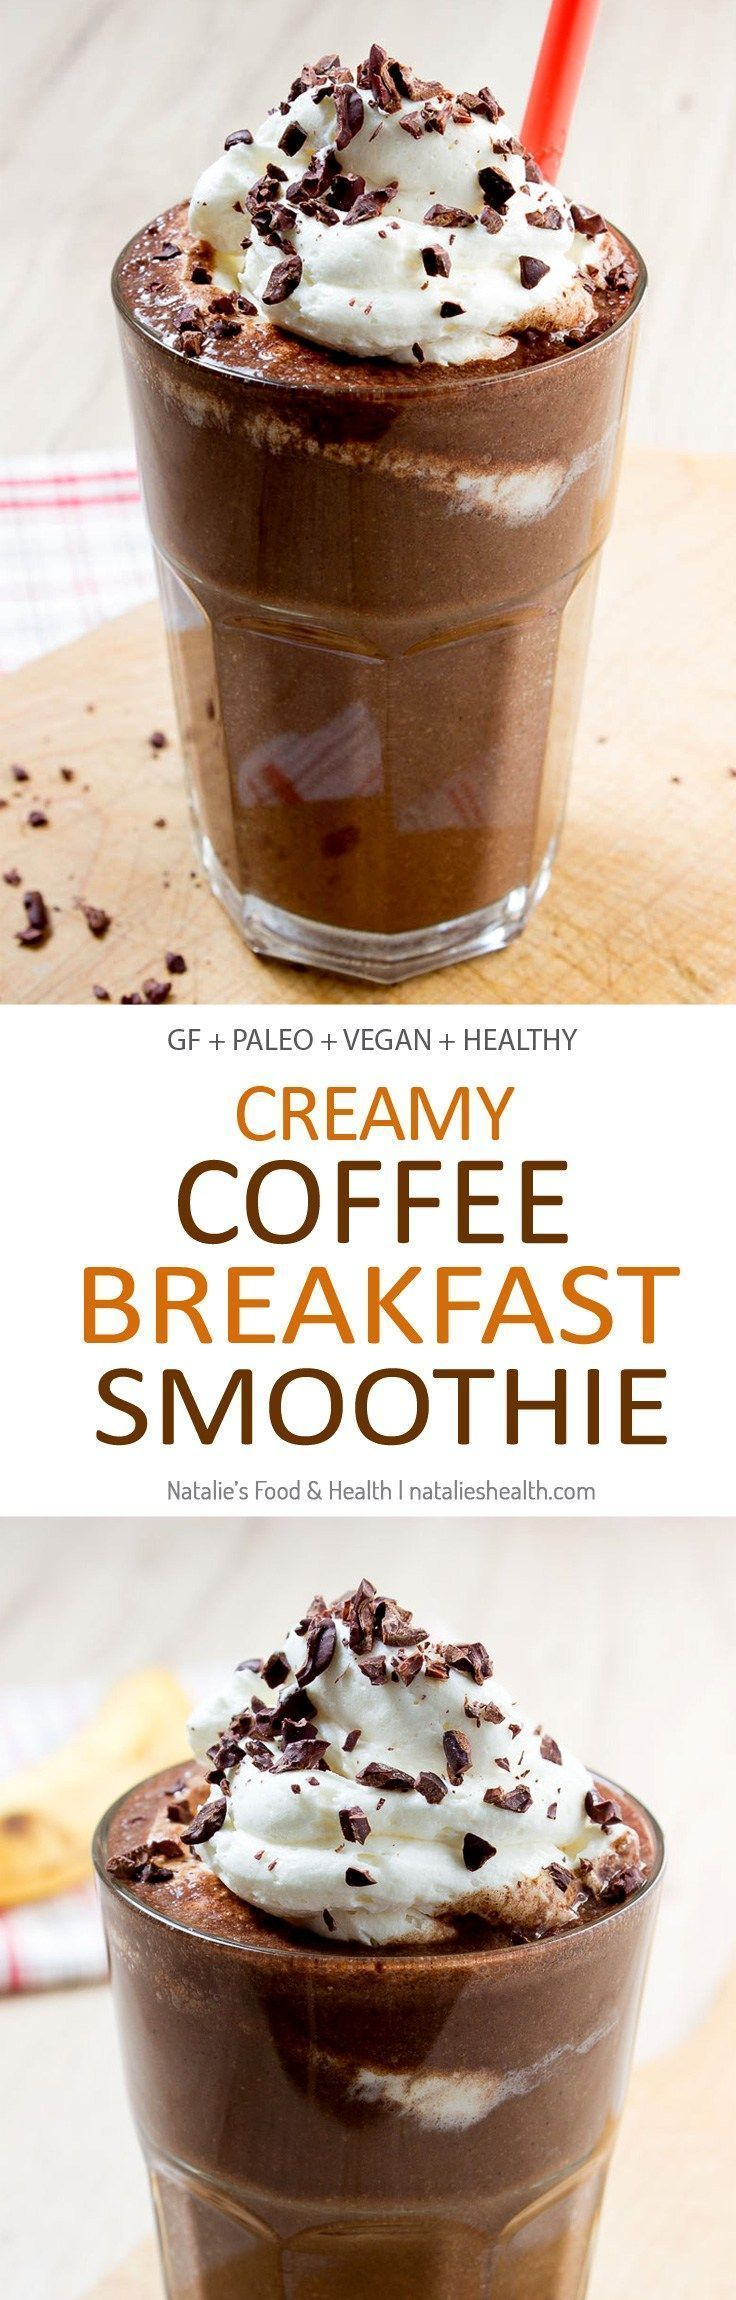 Creamy and energizing Coffee Breakfast Smoothie full of dark chocolate and coffee flavors